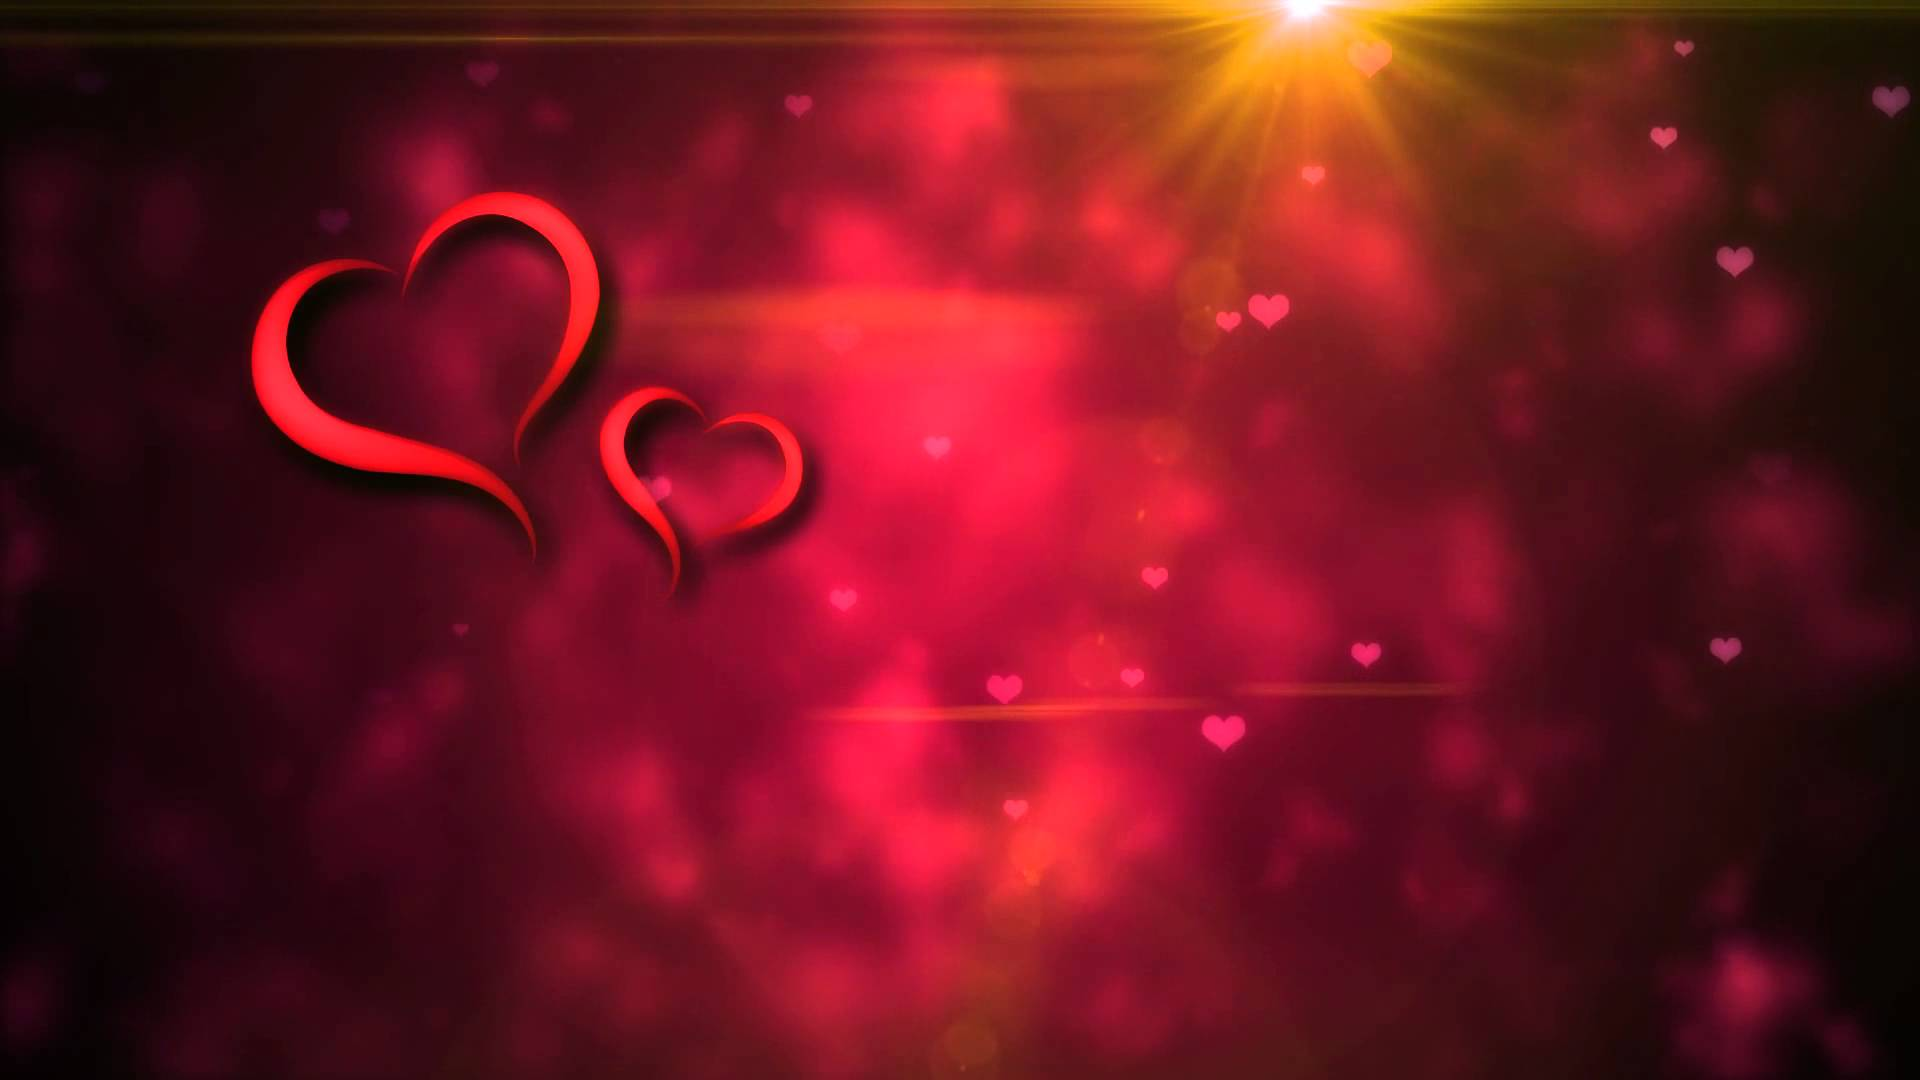 Love U Wallpaper Full Hd : Hd Wedding Backgrounds - WallpaperSafari